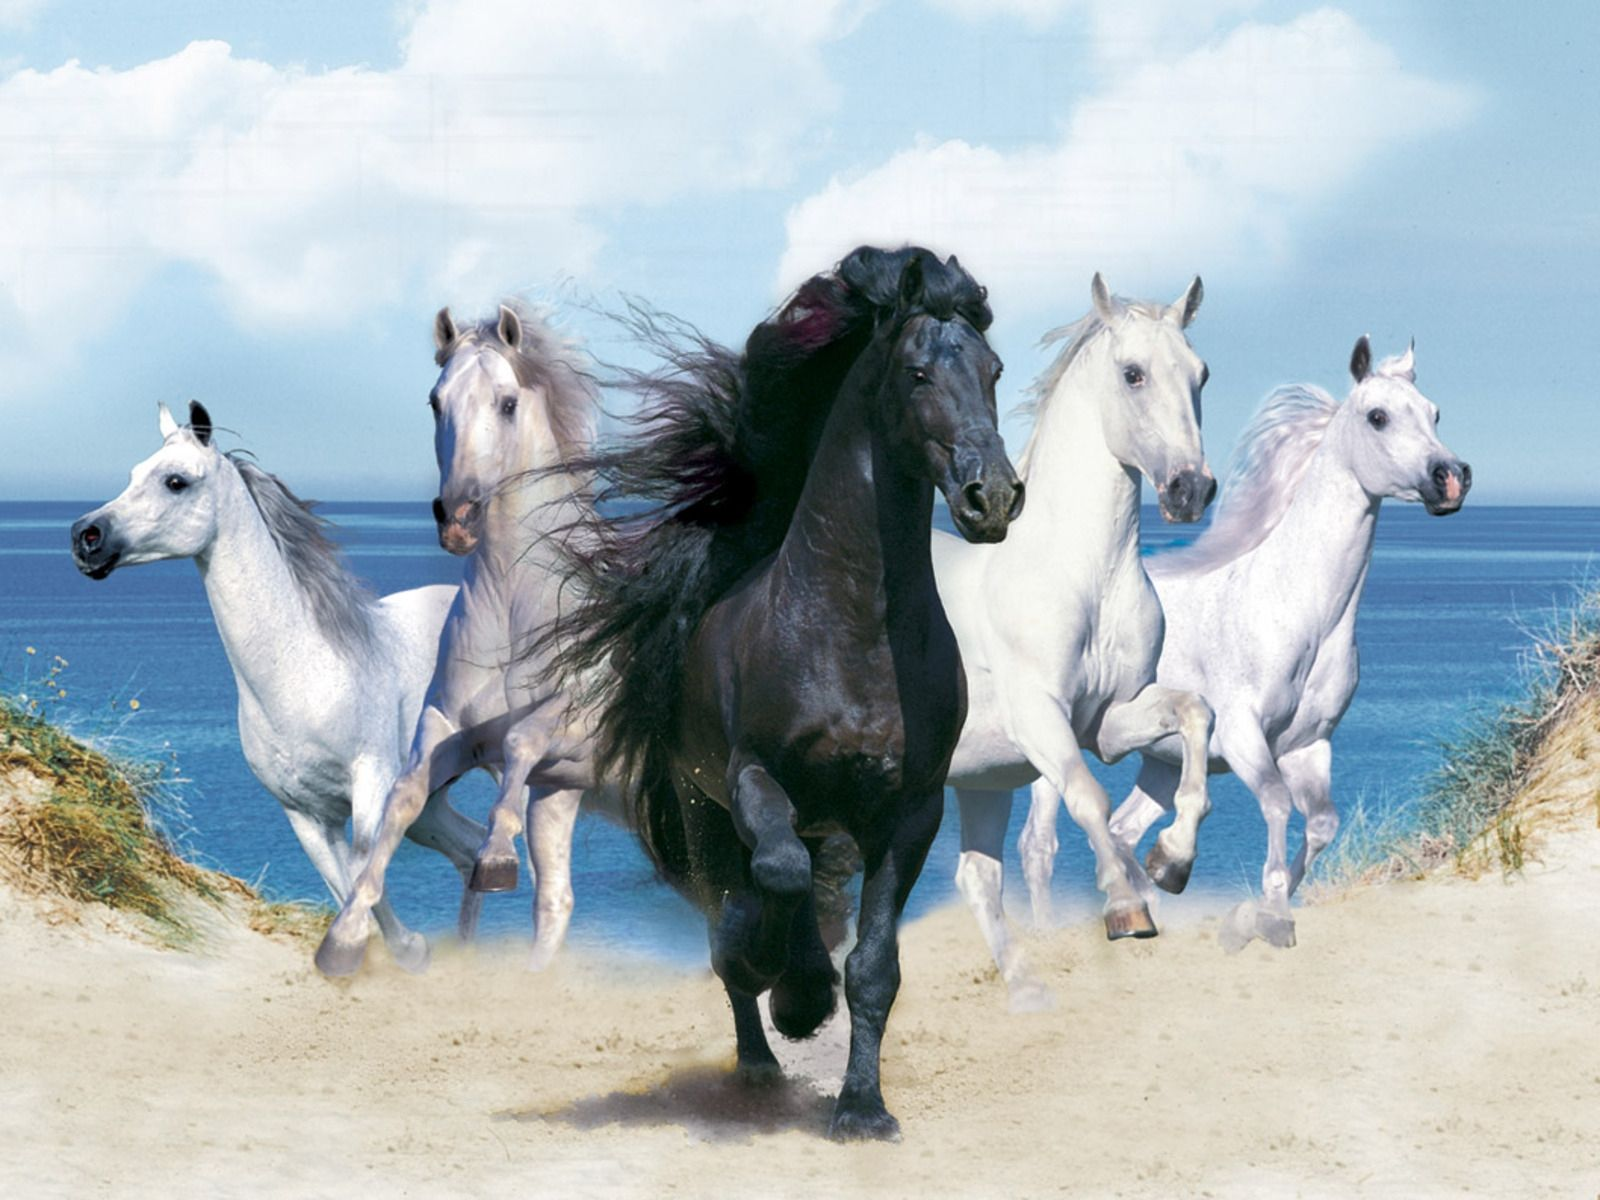 Black And White Horse On Land P Desktop Wallpapers Horse